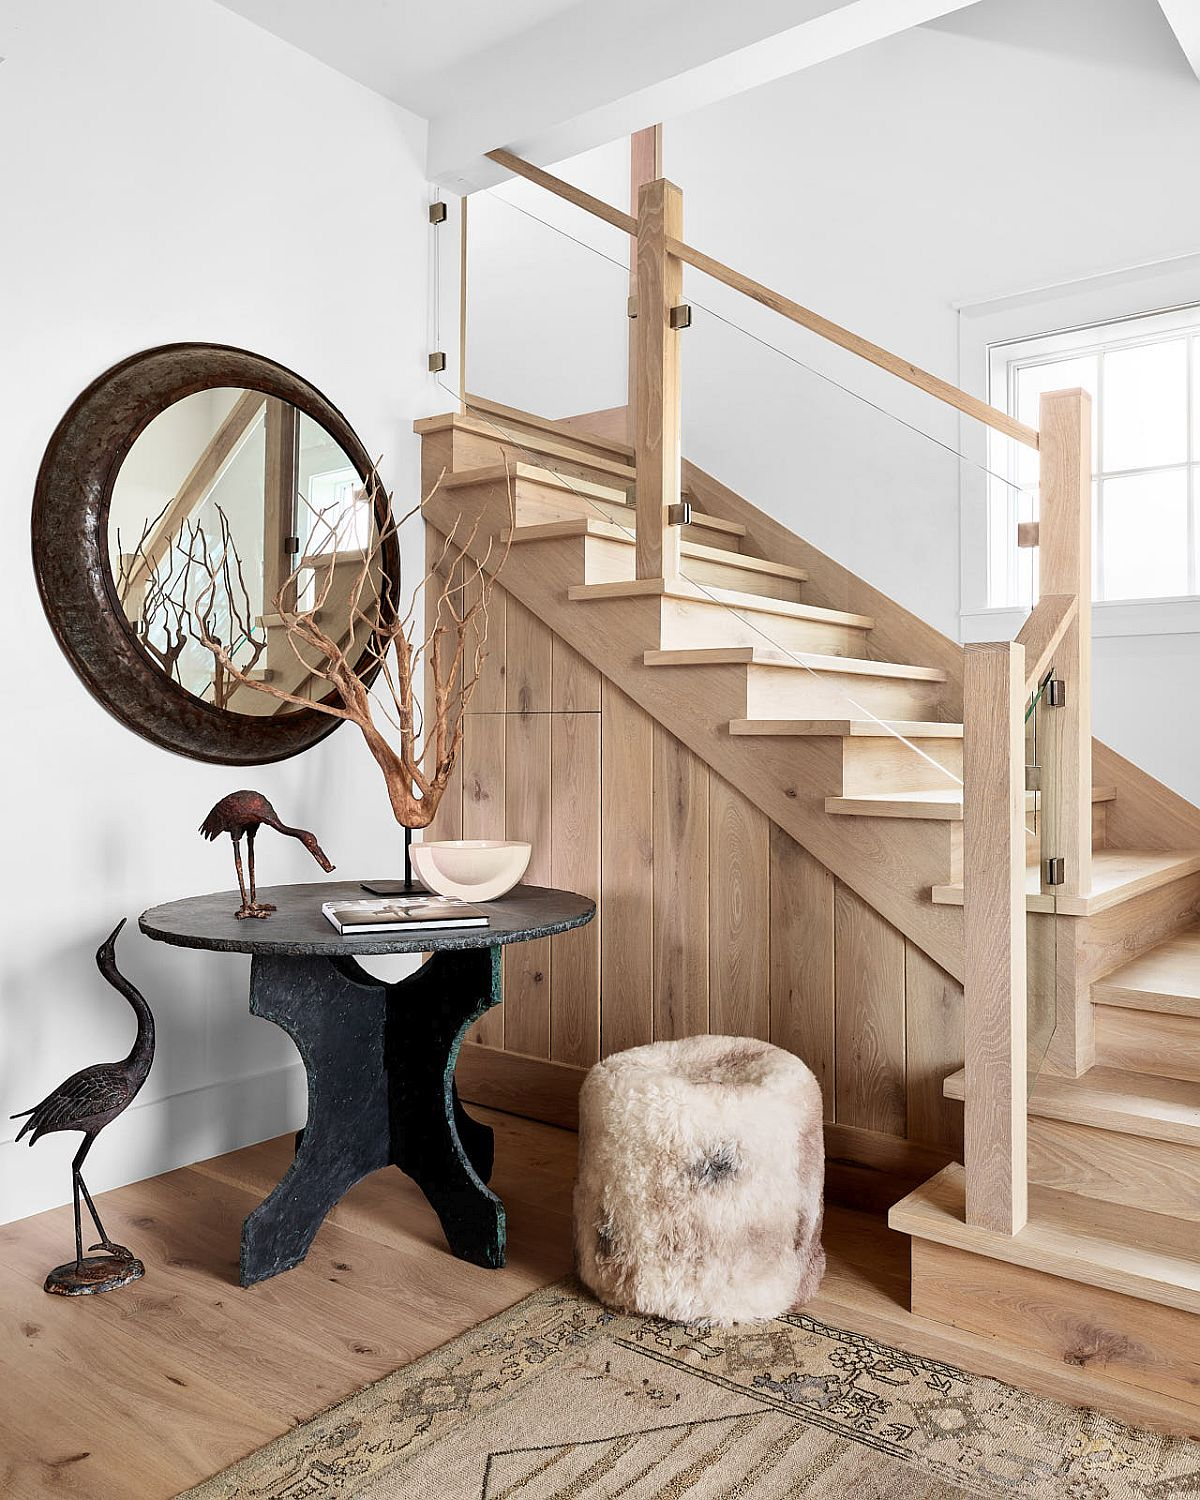 Beach style entry to the bungalow with a vintage console table, round mirror and staircase leading to the upper level